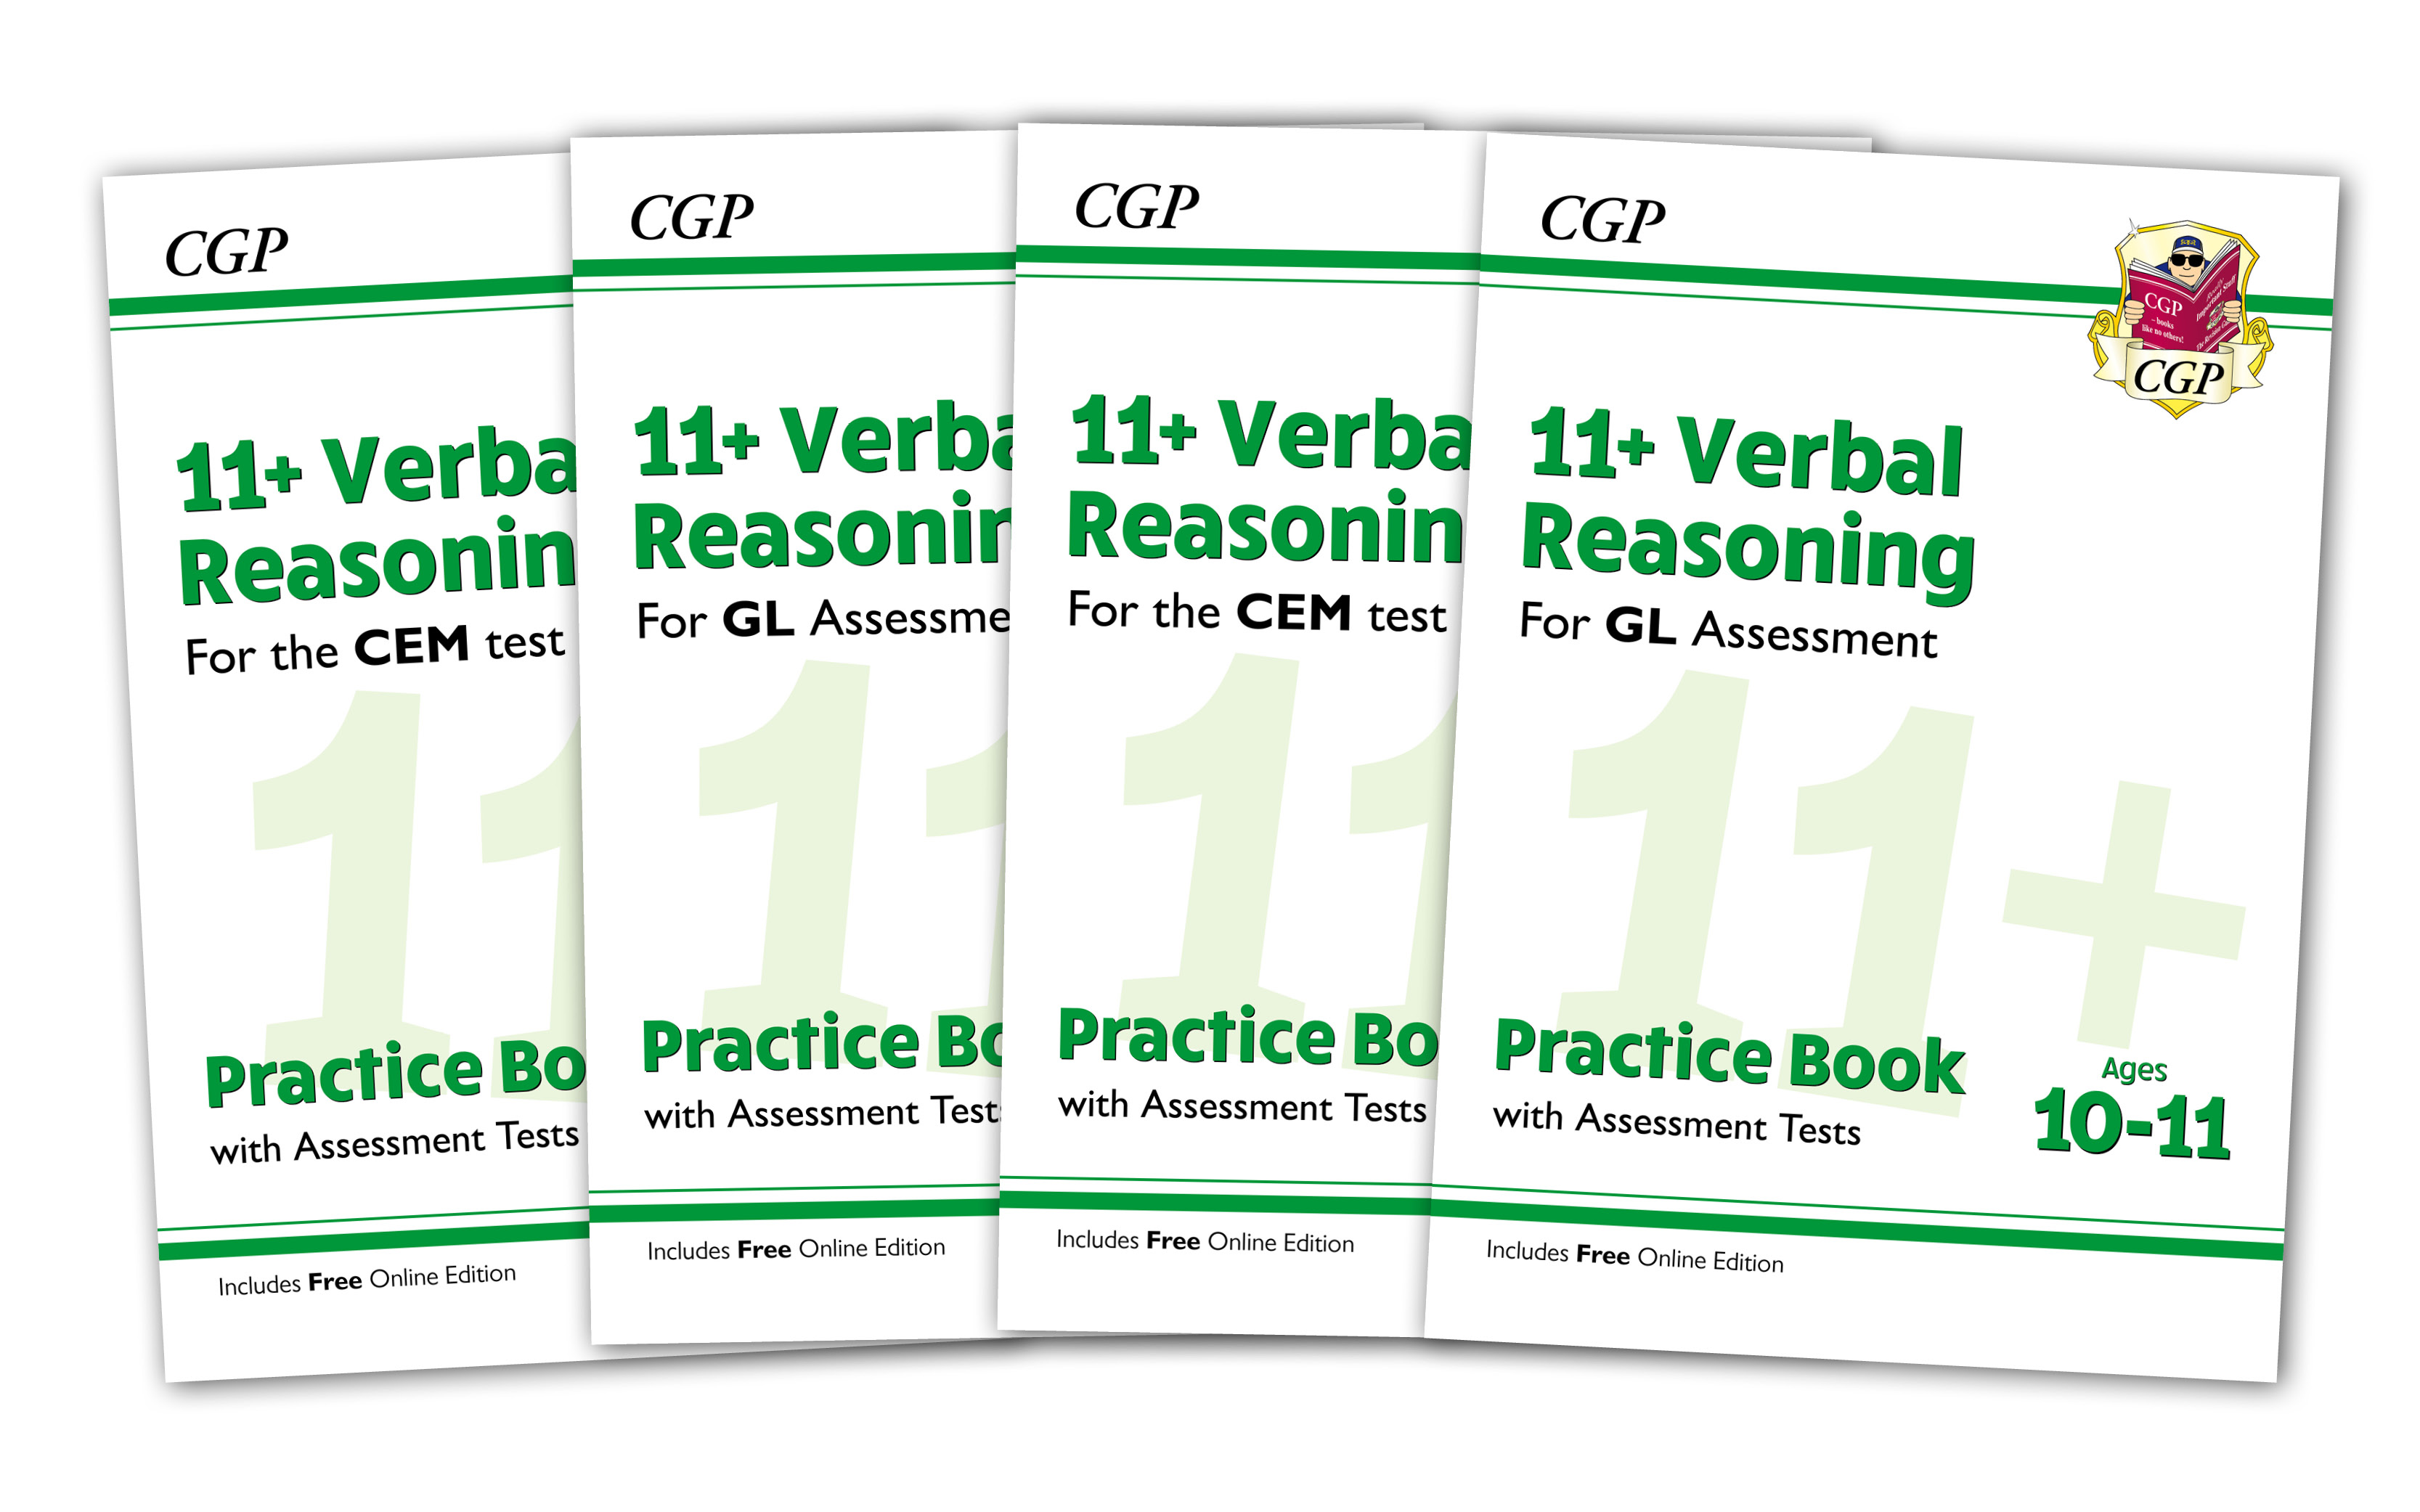 medium resolution of Free 11+ Multiple Choice Answer Sheets   CGP Books